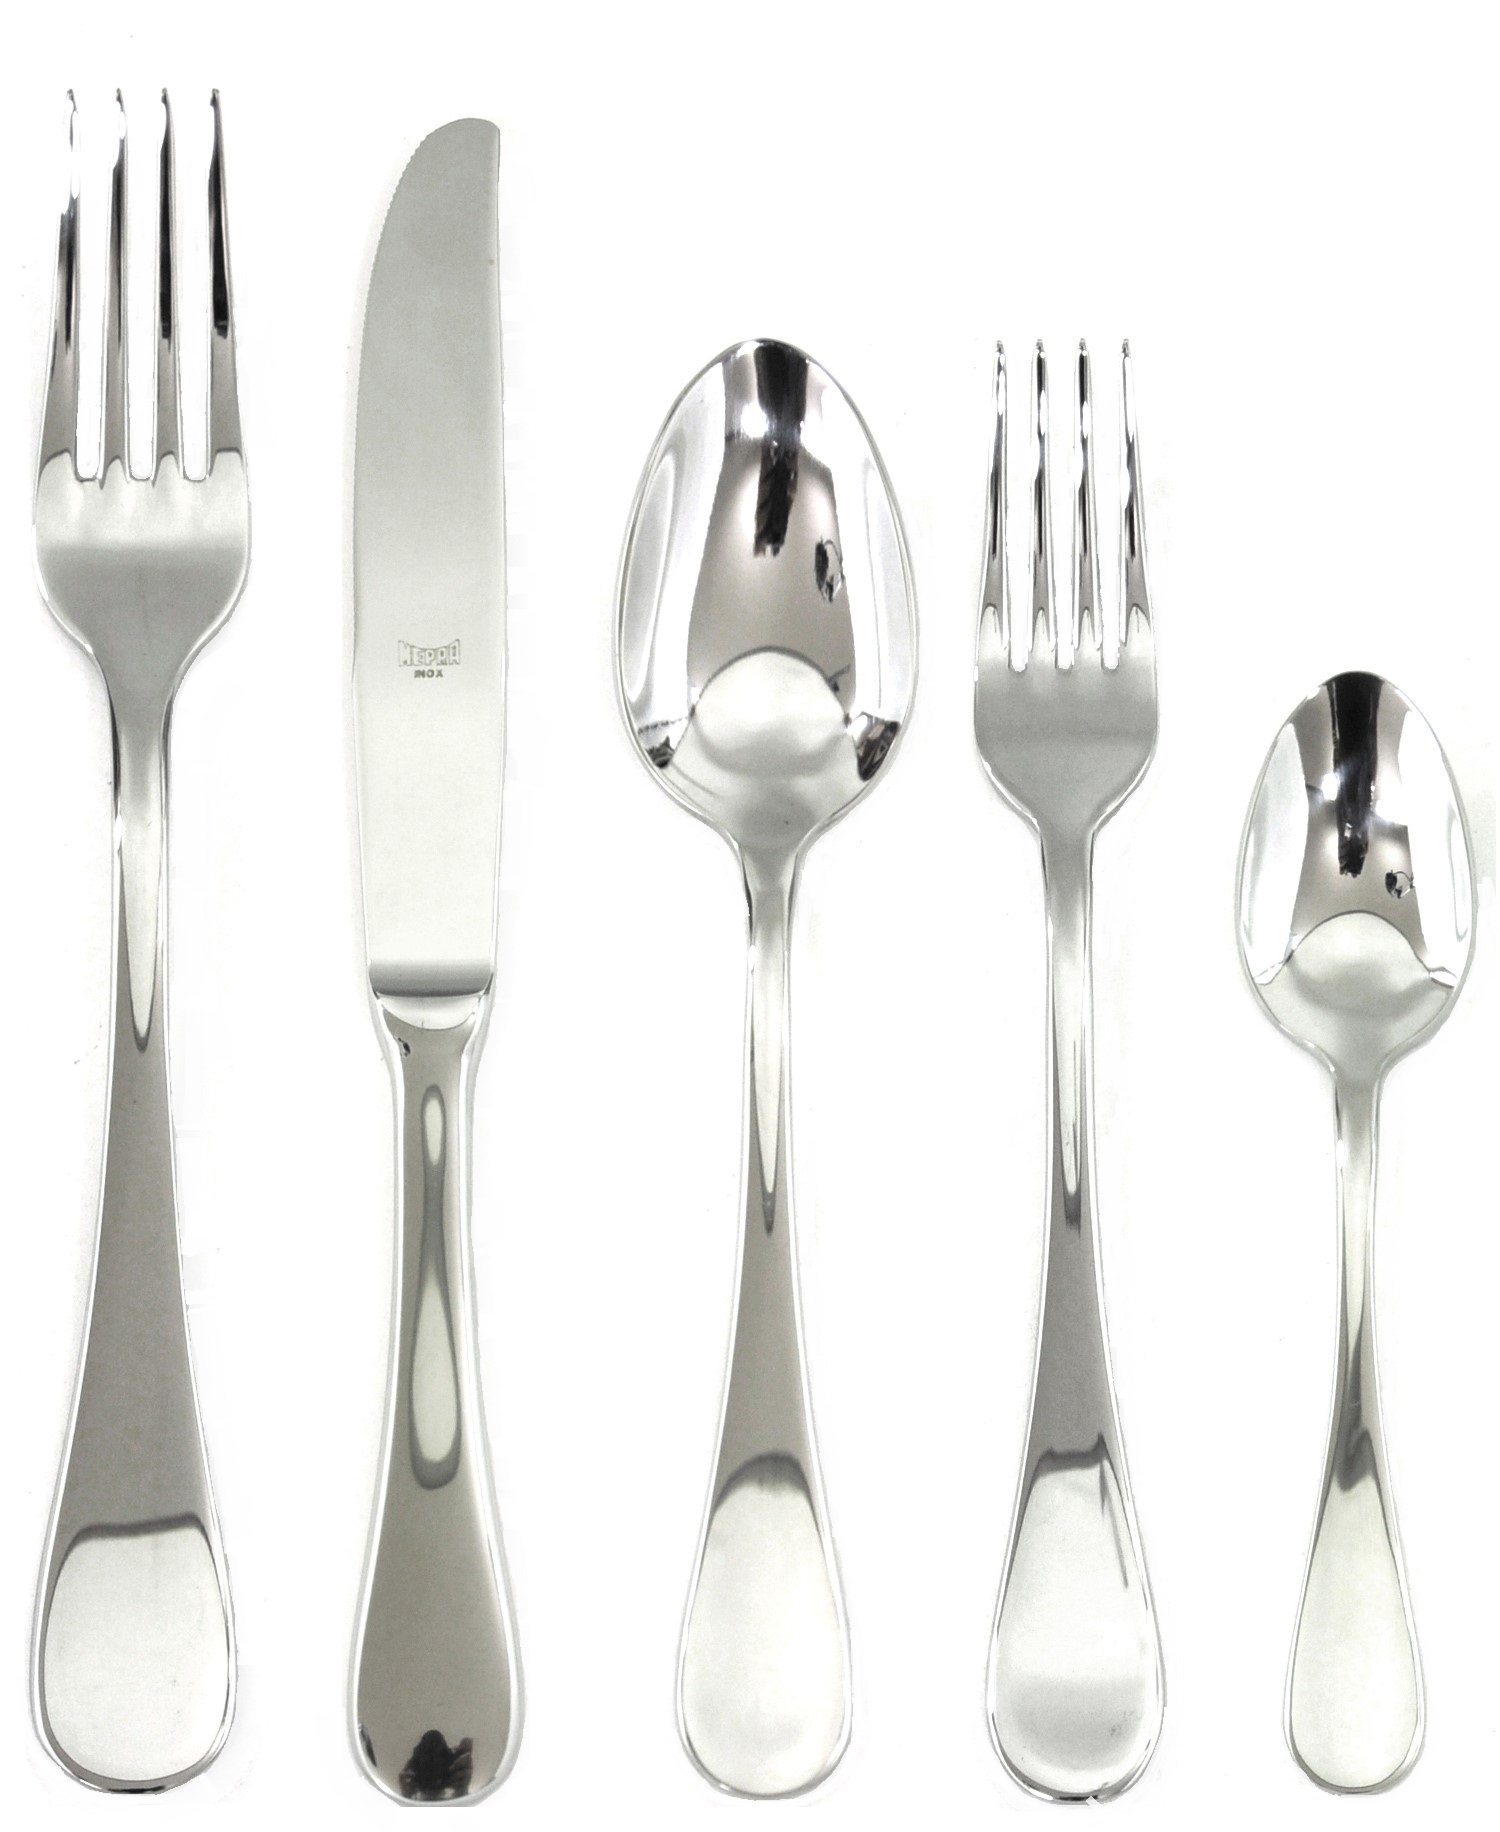 Mepra PCS Brescia 5 Piece Place Setting, Stainless Steel, Silver - DISHWASHER SAFE FLATWARE: Mepra cutlery is designed to be durable and completely dishwasher safe. This cutlery is resistant to rust, corrosion, fading, tarnishing, and chipping to ensure a long-lasting flatware set. ITALIAN-MADE DESIGNS: Mepra is known for innovation in design, thanks to lucrative collaborations with important Italian designers such as Angelo Mangiarotti. You can now easily bring a piece of Made in Italy history to your table. EXPERIENCE SOMETHING SPECIAL: The Brescia flatware collection features cutlery with classic teardrop shape and finish on the handle. The cutlery is crafted to be in addition to your table setting. - kitchen-tabletop, kitchen-dining-room, flatware - 71sLHQgHjeL -